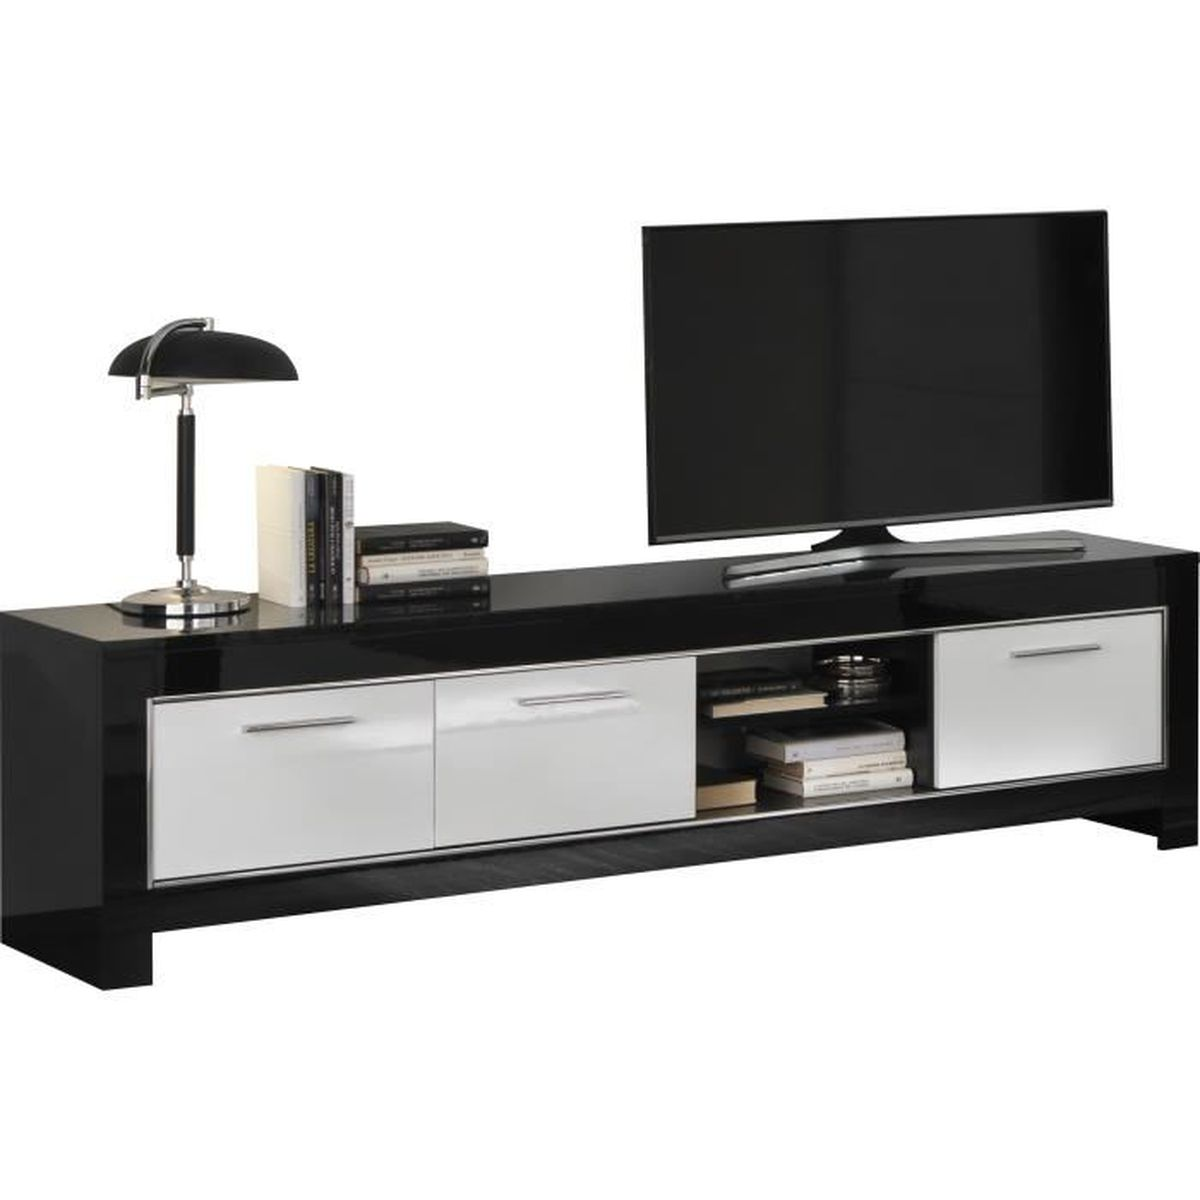 meuble tv design noir et blanc laqu brillant de 207 cm. Black Bedroom Furniture Sets. Home Design Ideas